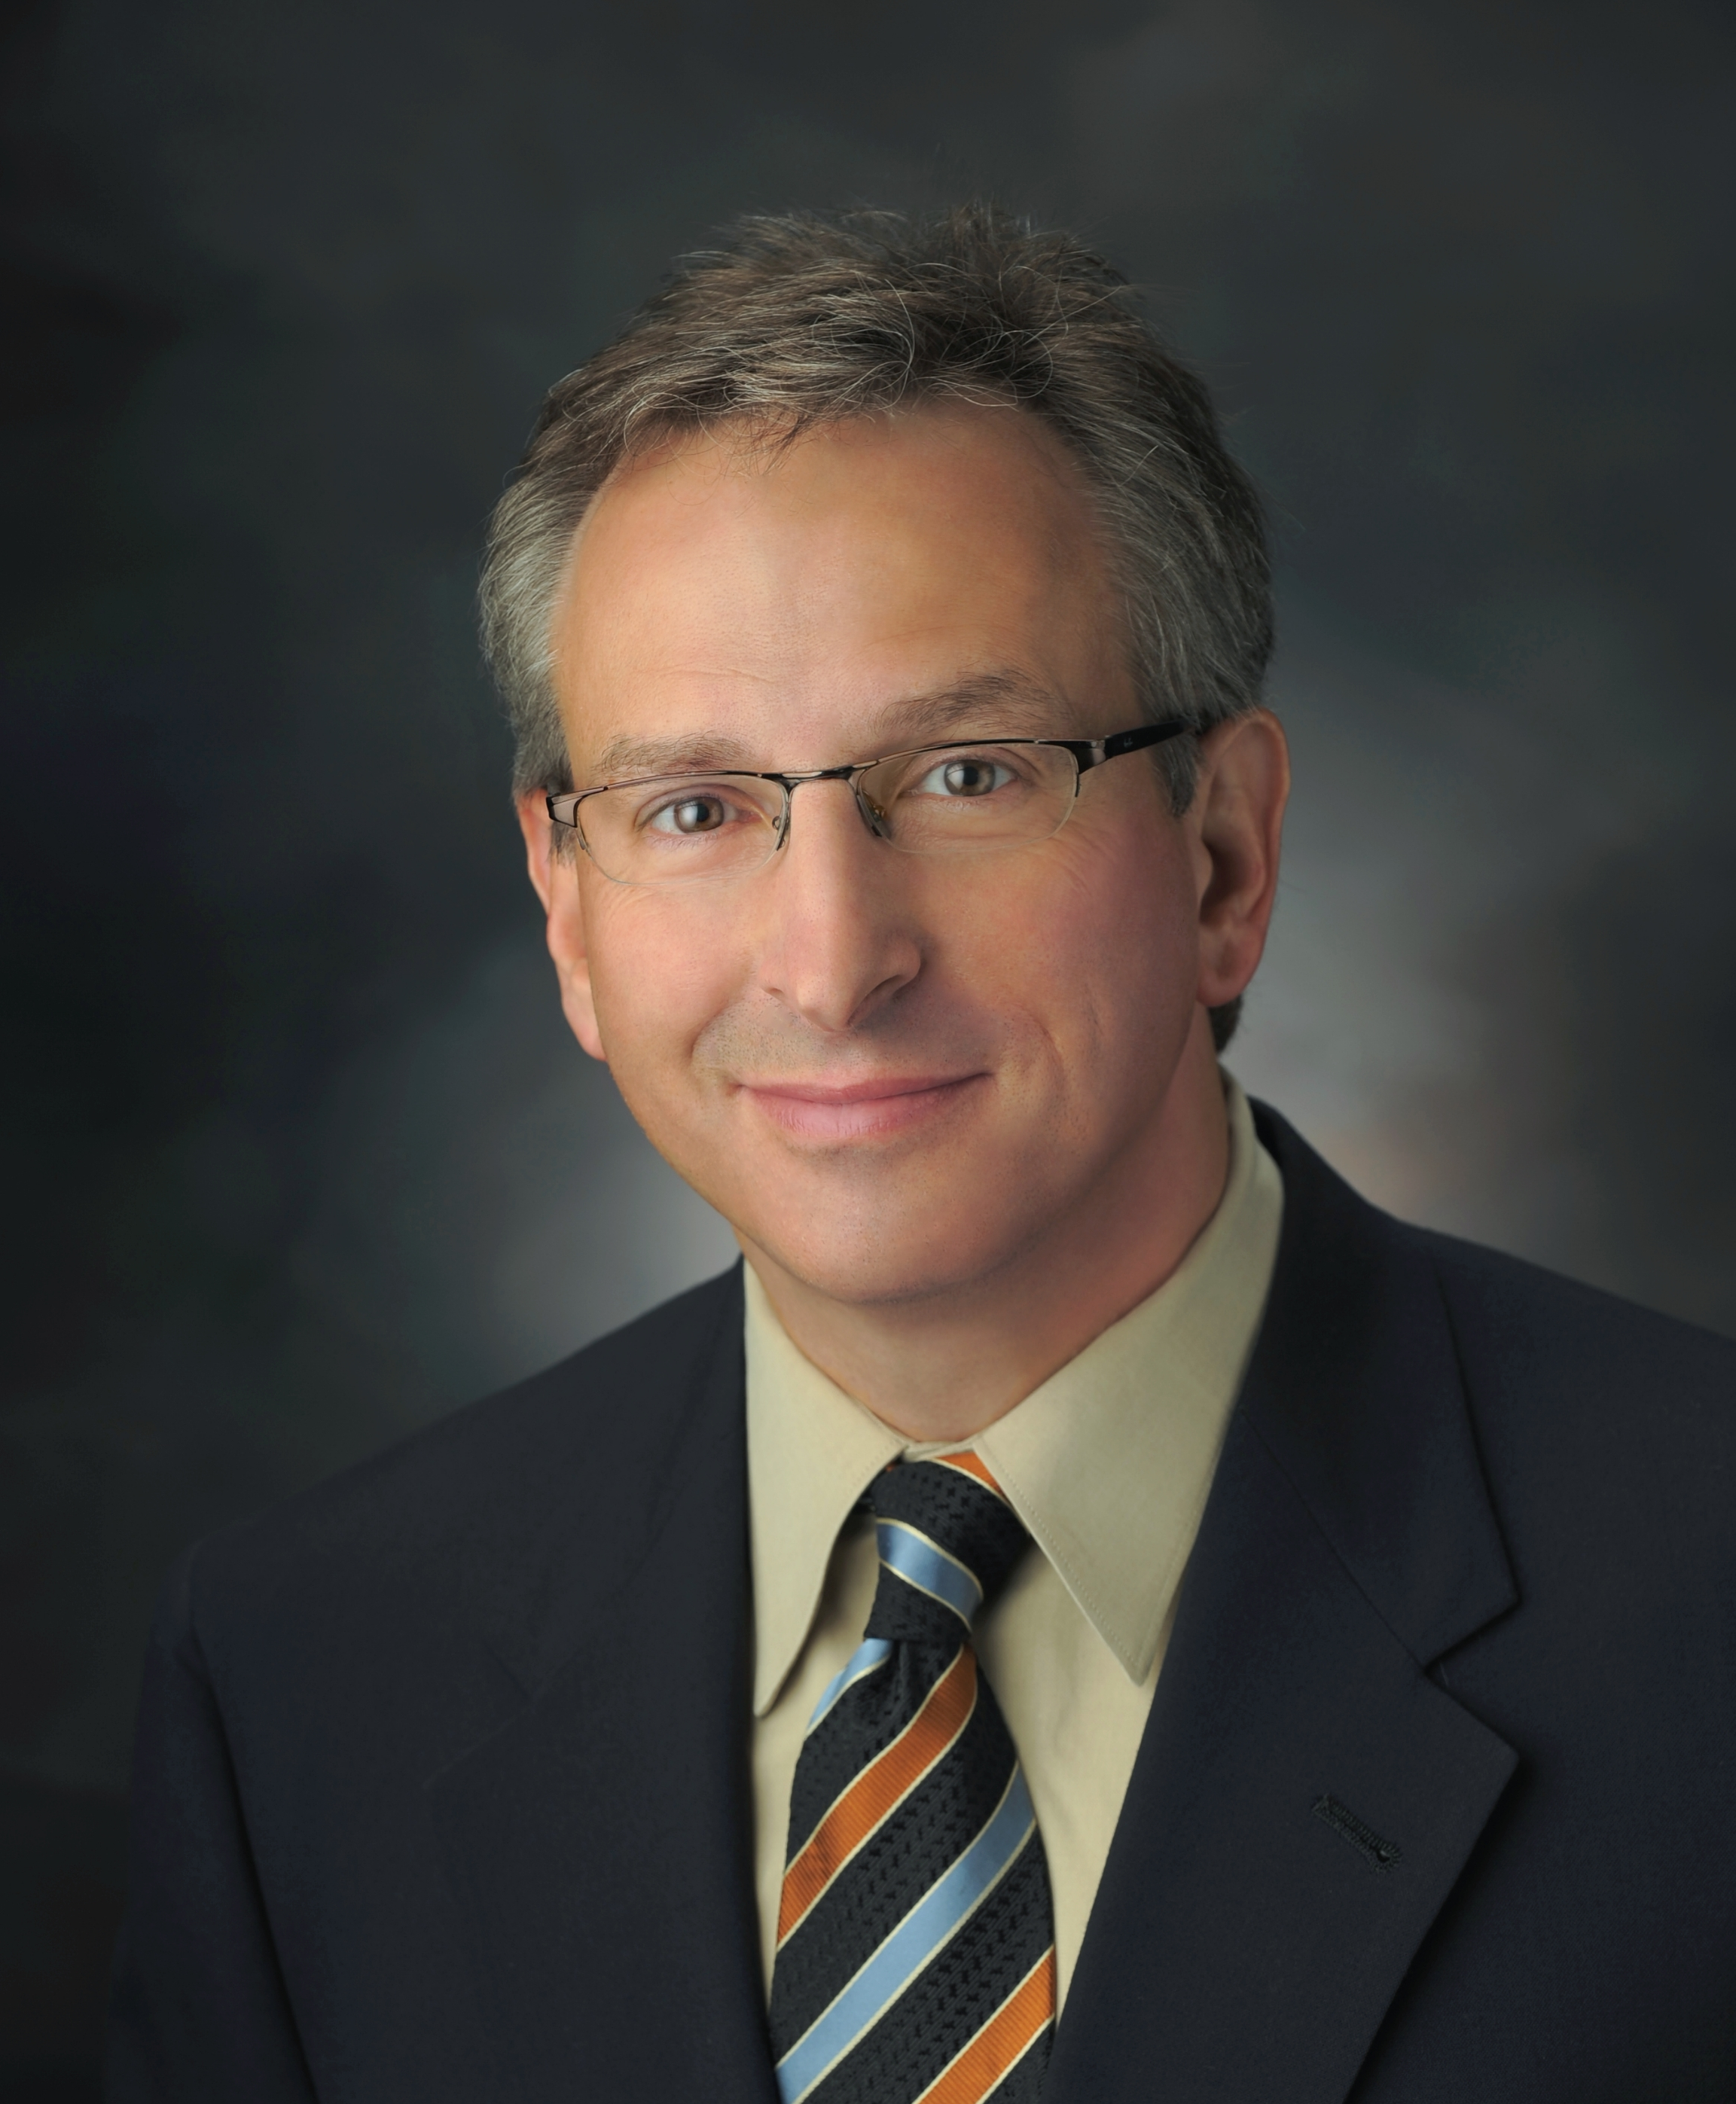 David E. Bertler, MD